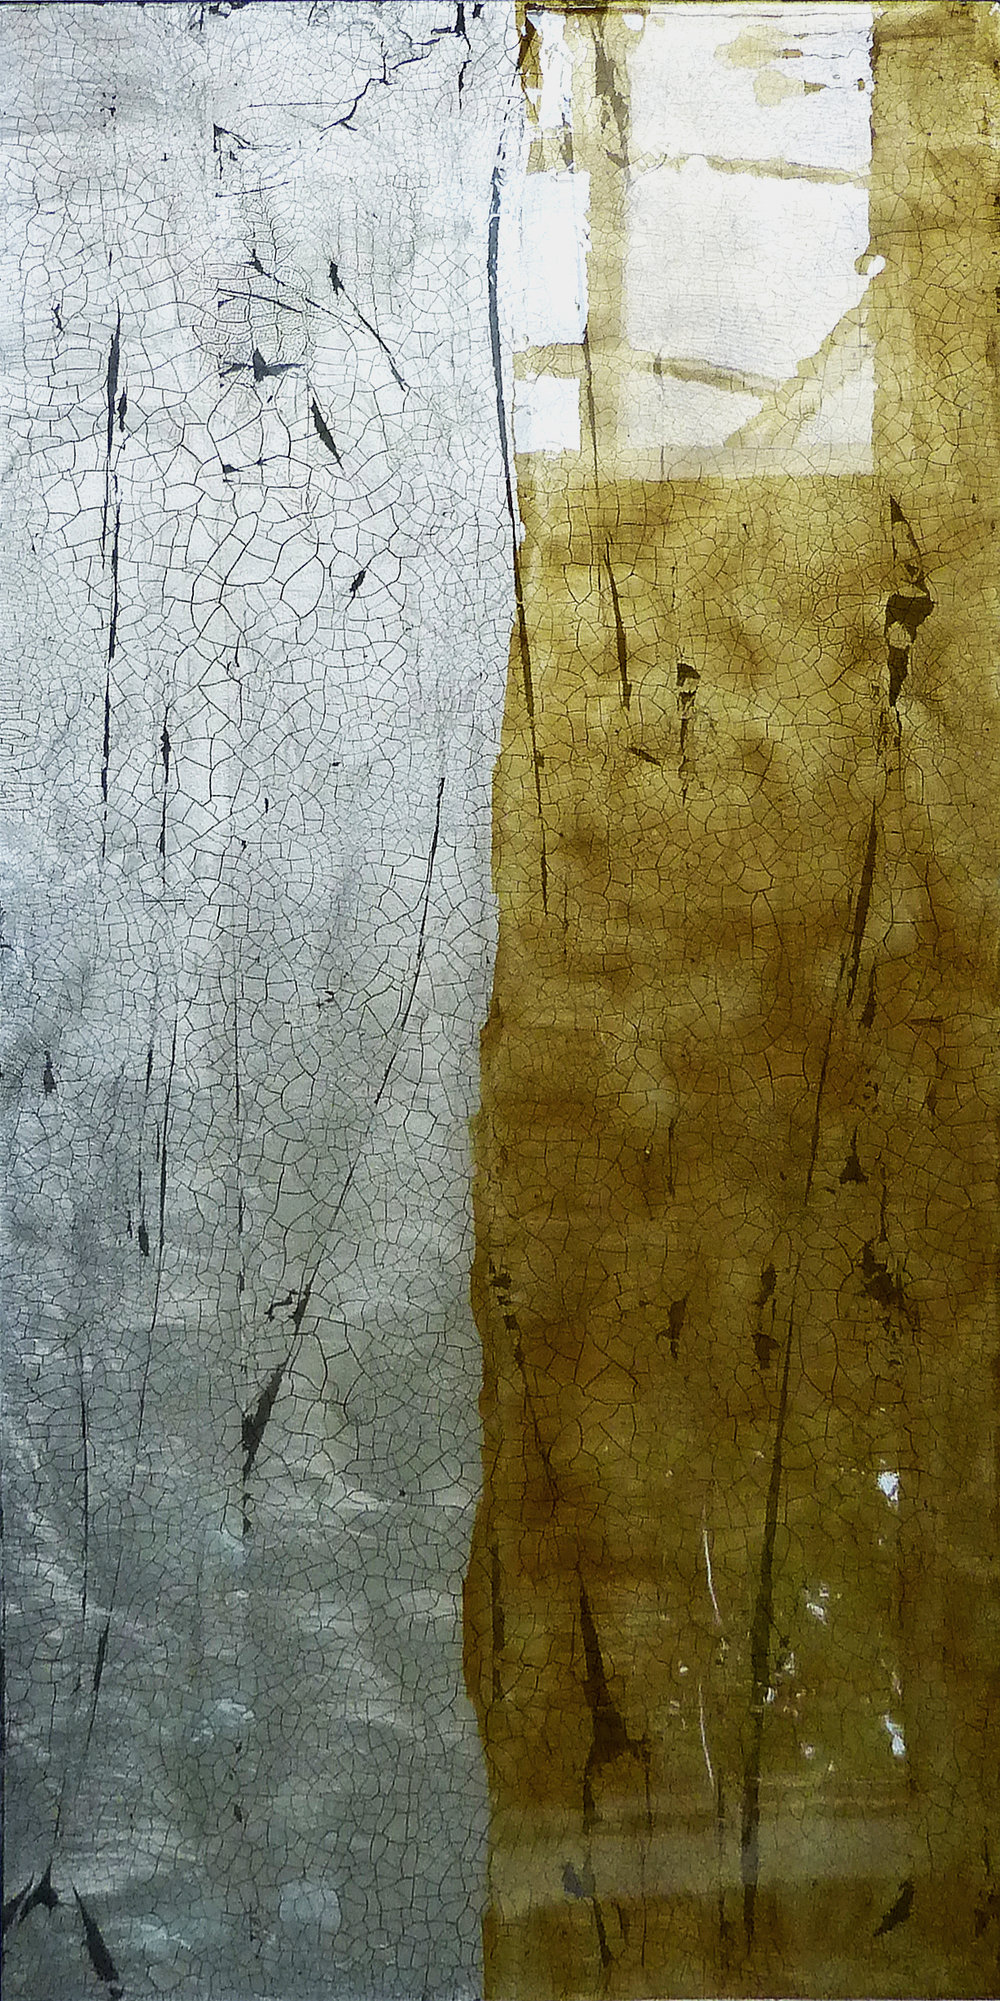 TIBOR | 122x61cm gilded silver leaf and mixed media on board with high gloss epoxy resin | £1500.00 | SOLD